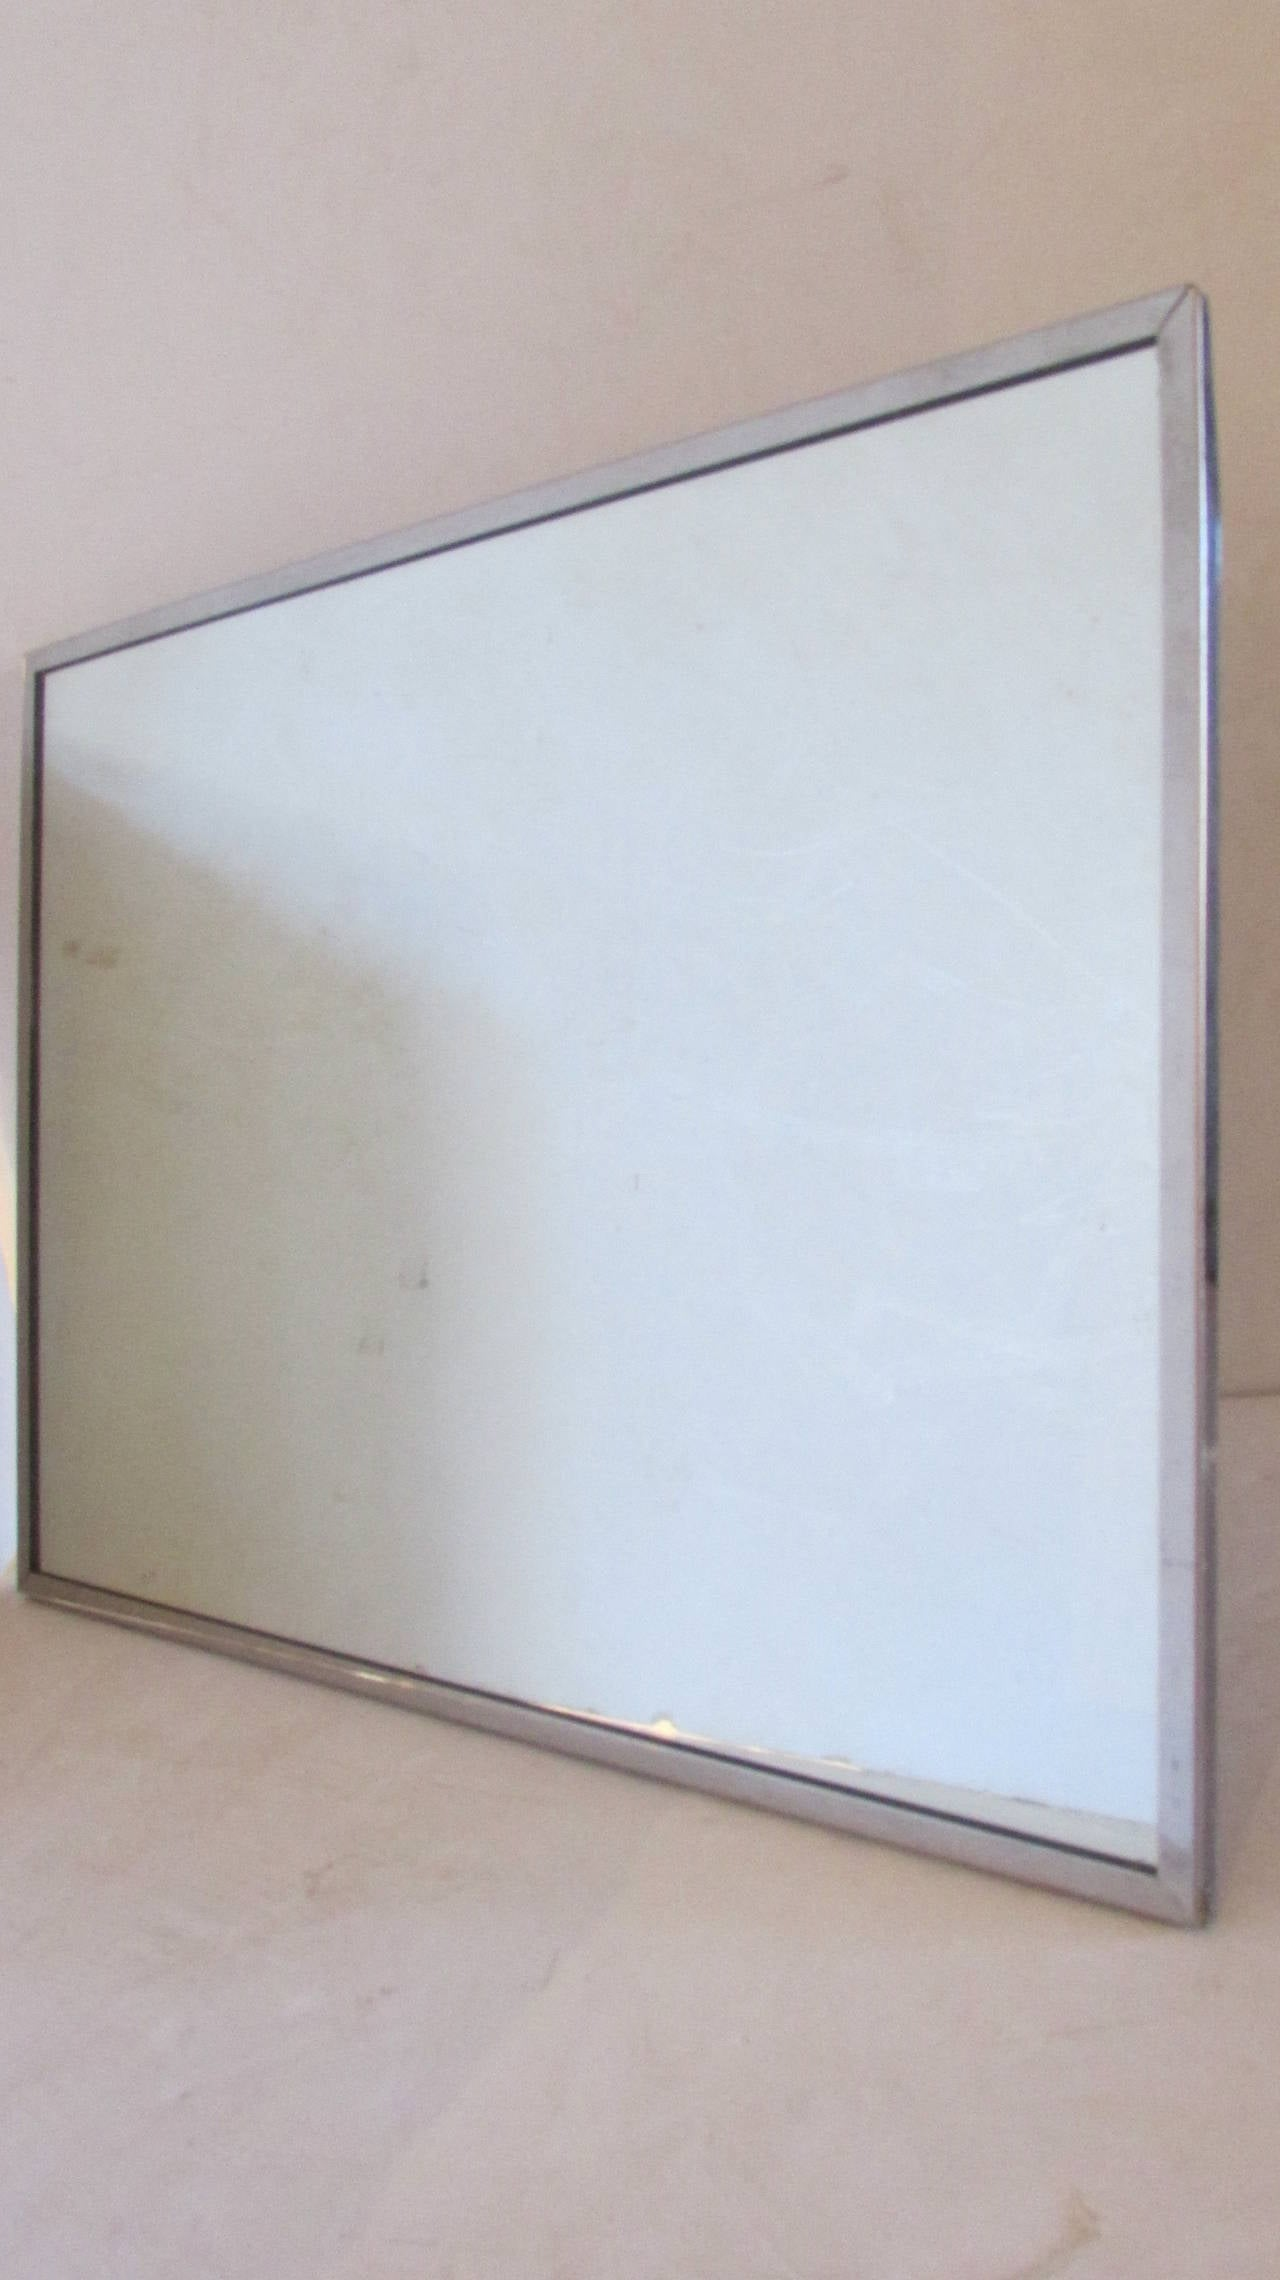 Stainless Framed Mirror - mid20th century industrial stainless steel ...